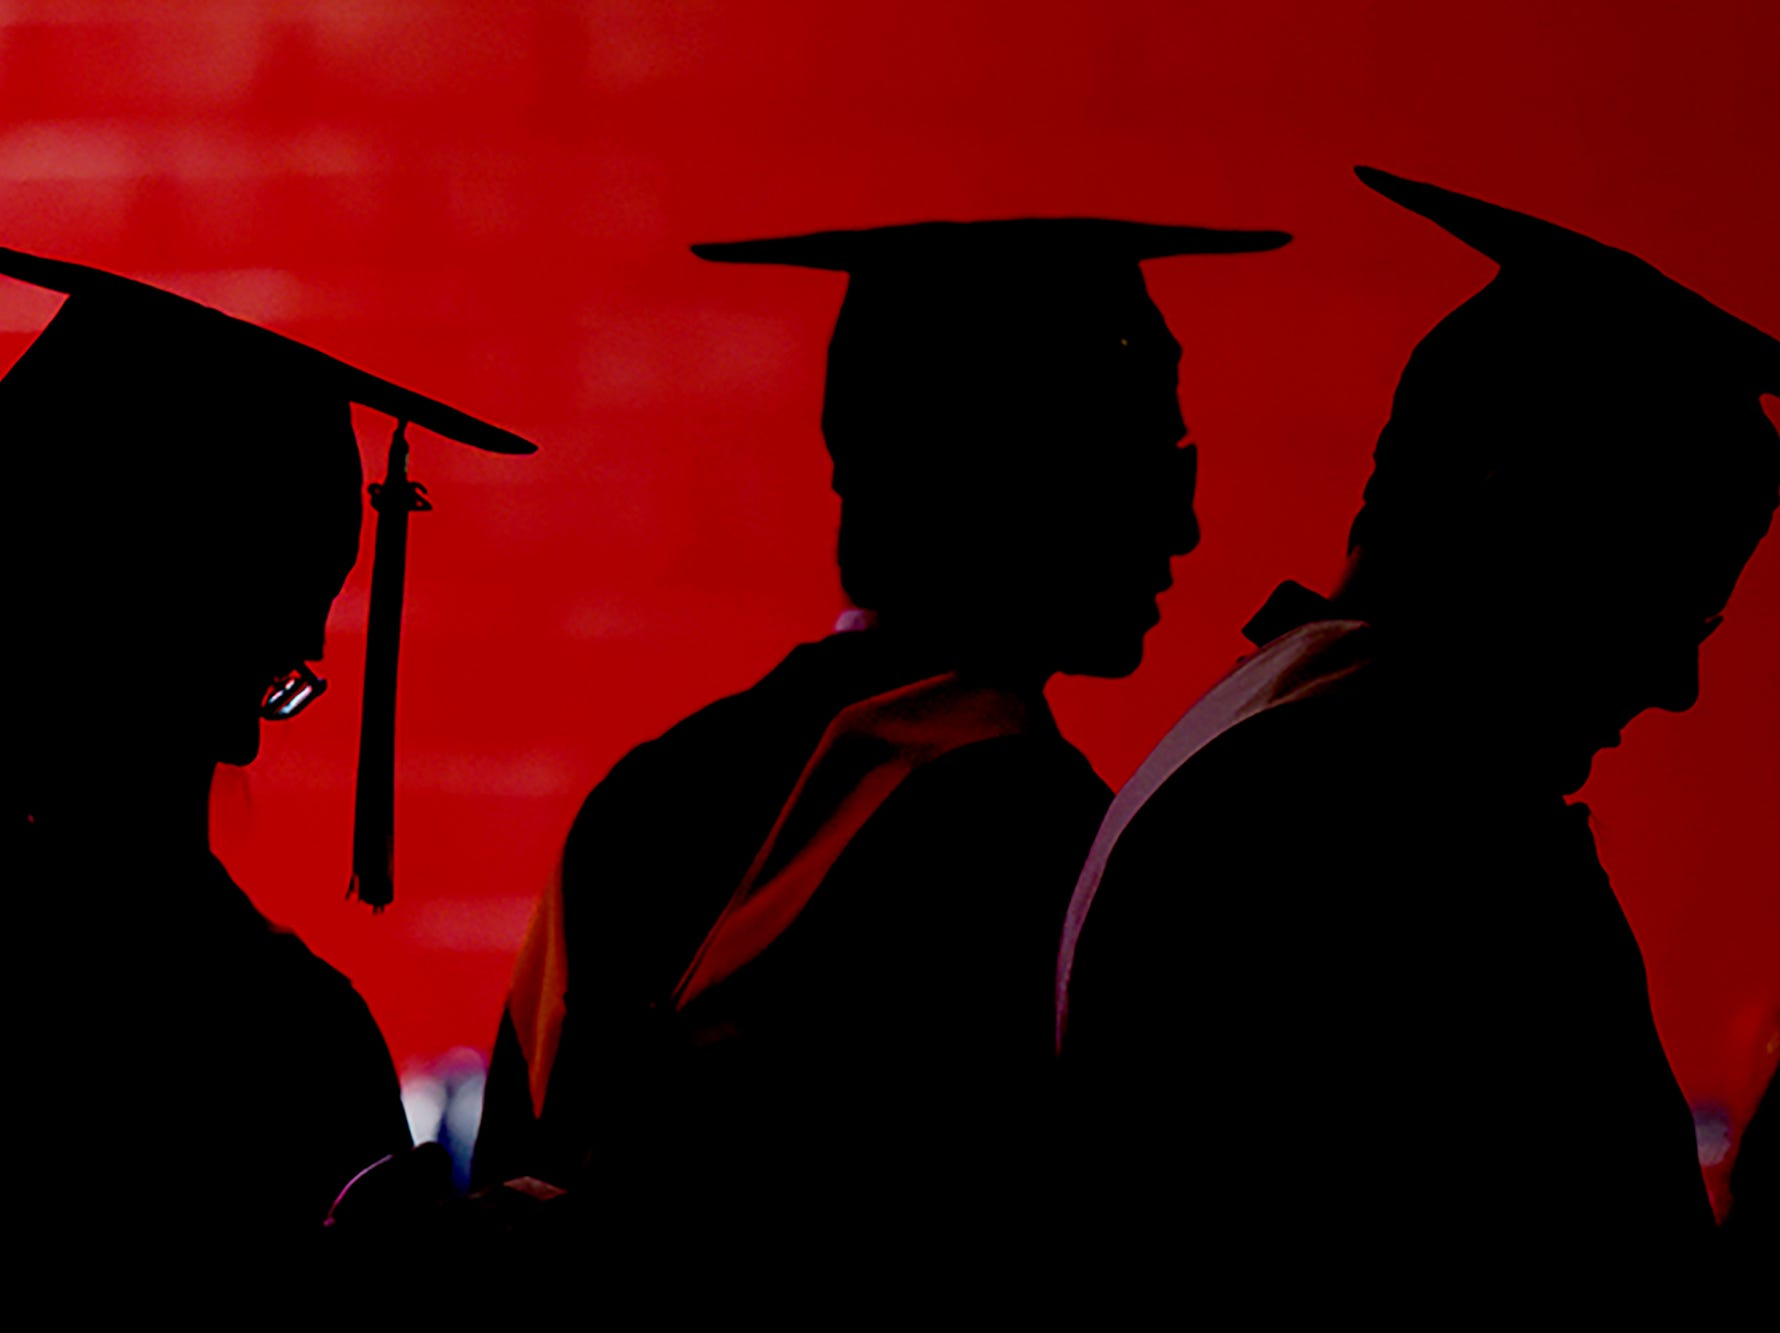 The 252nd commencement of Rutgers University was held at High Point Solutions Stadium in Piscataway on Sunday, May 13, 2018.